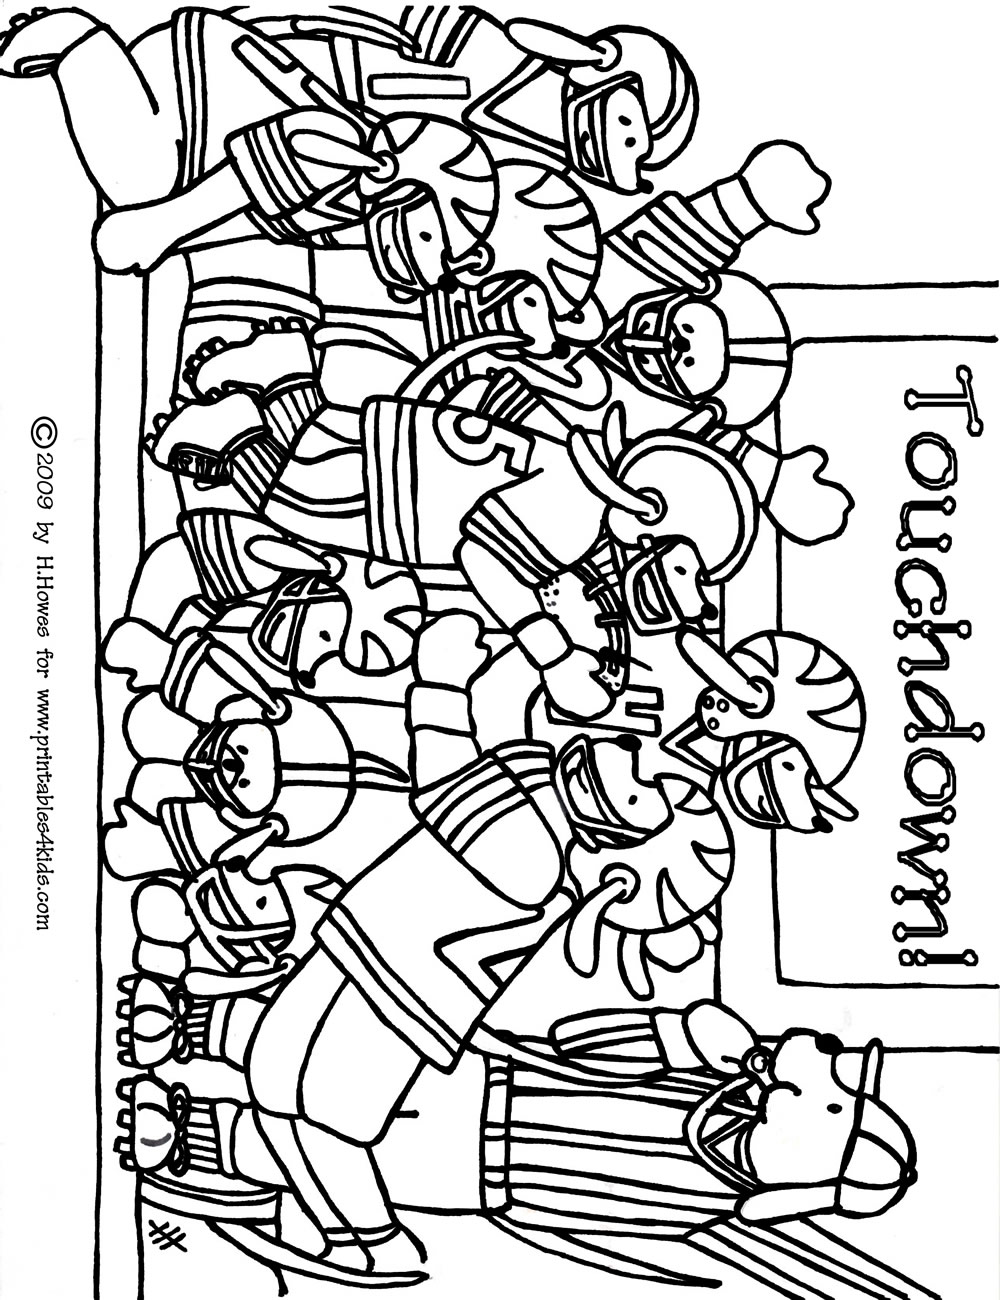 1000x1300 Football Game Coloring Page Printables For Kids Free Word